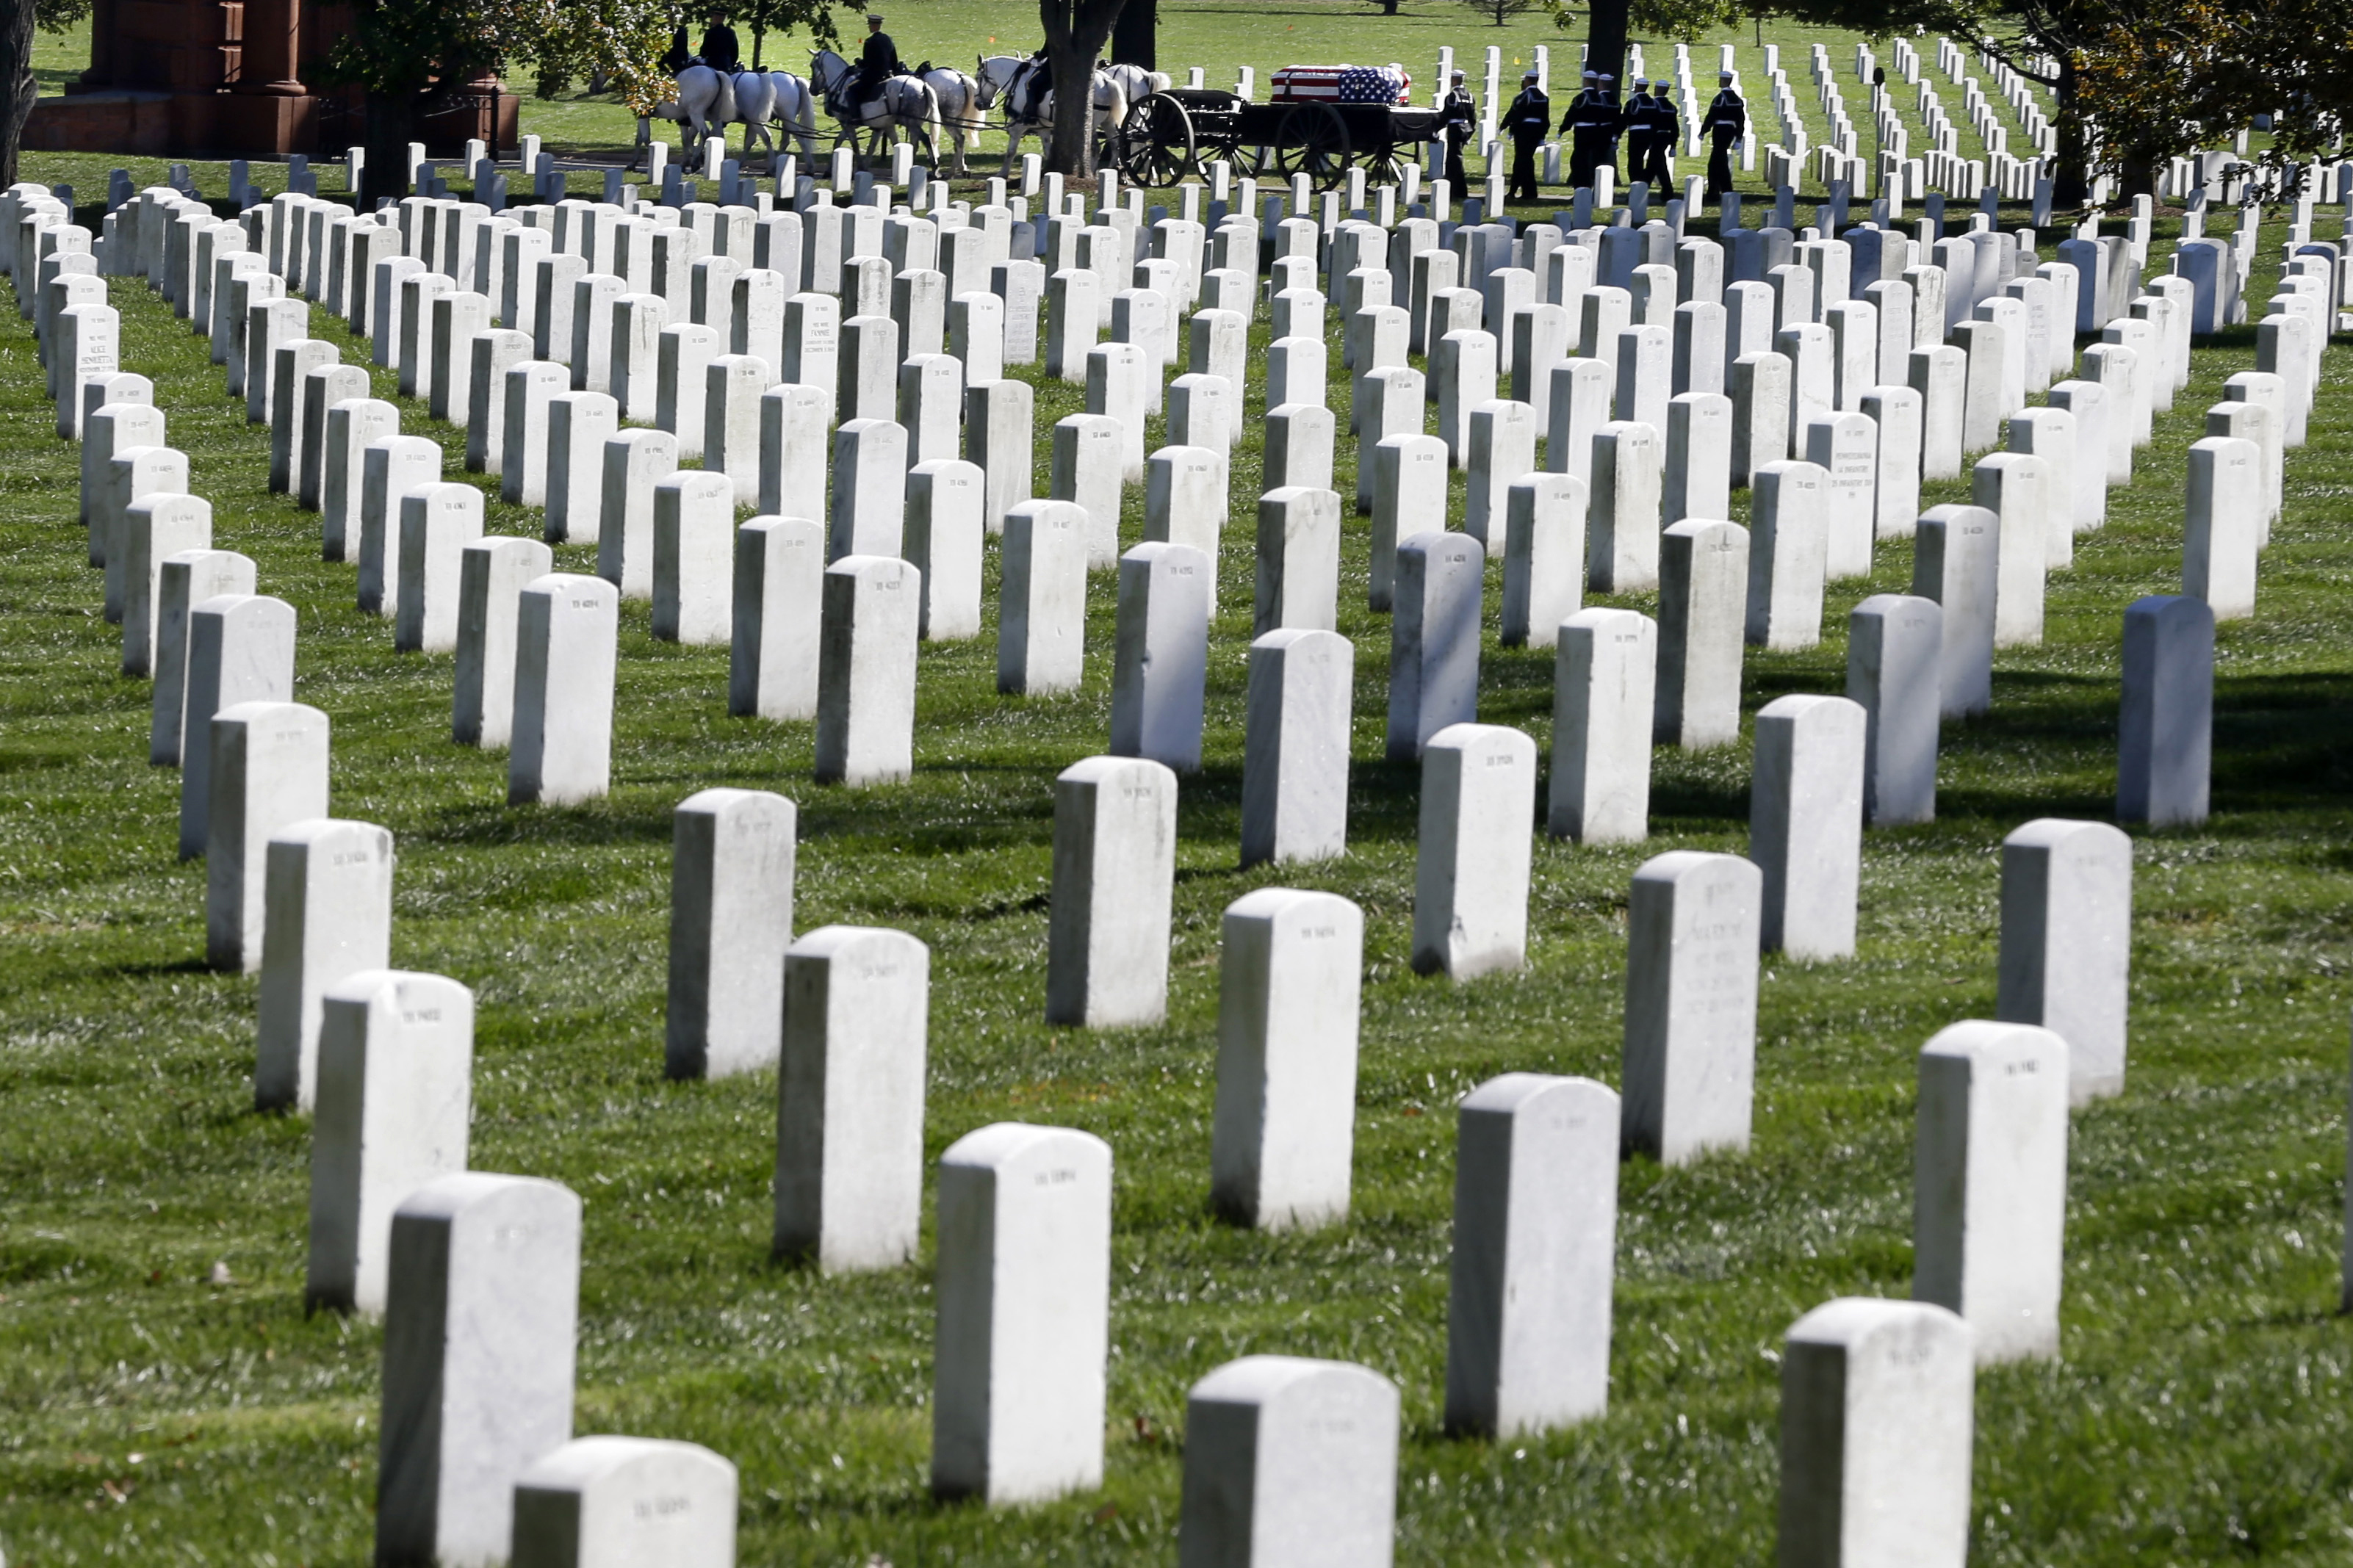 Officials talk 'tough reality' of Arlington National Cemetery's limited space